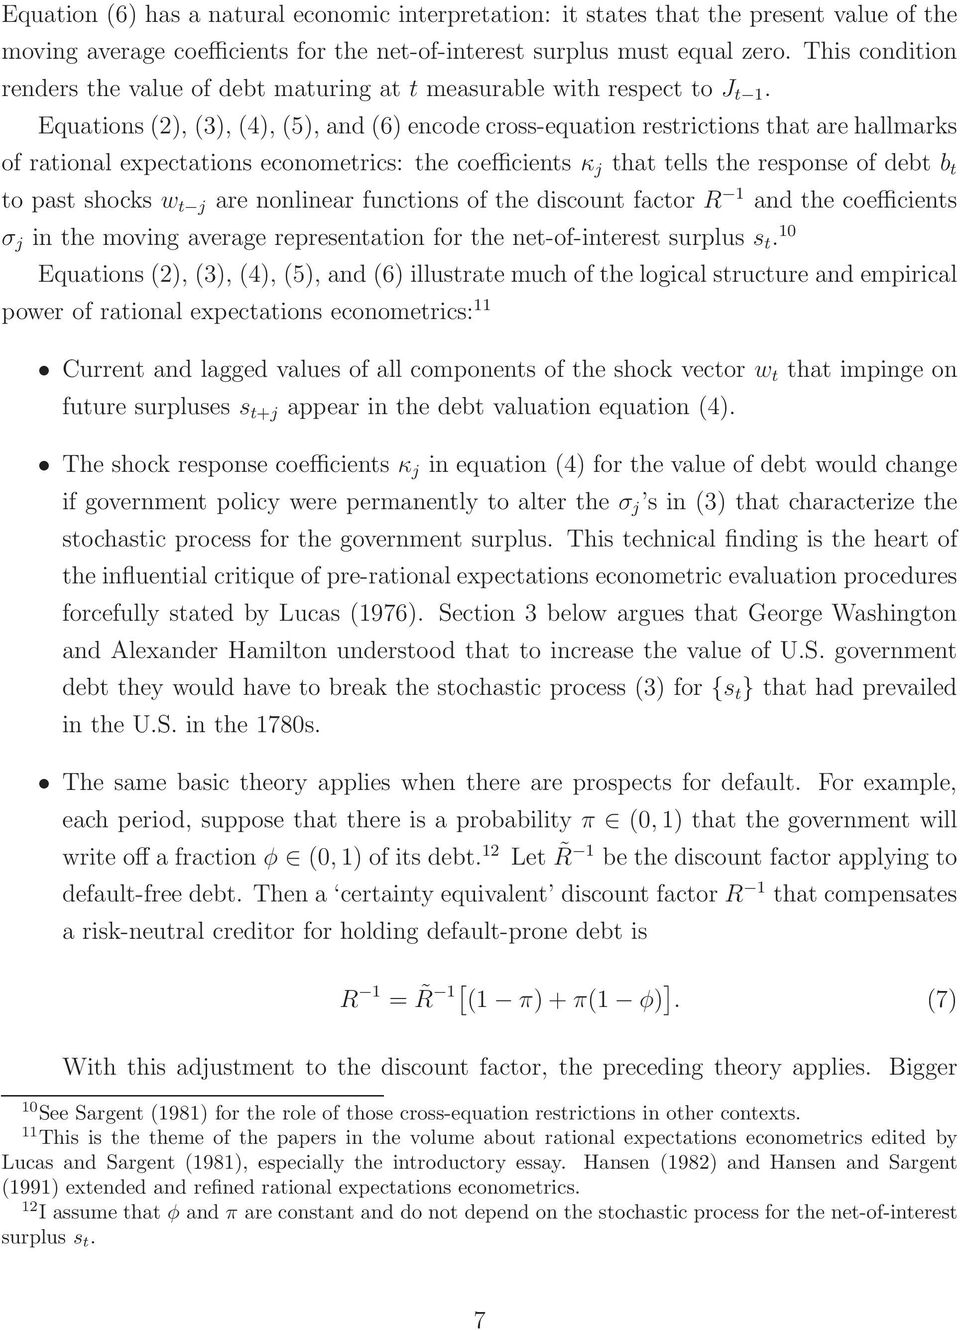 Equations(2), (3), (4), (5), and(6) encode cross-equation restrictions that are hallmarks of rational expectations econometrics: the coefficients κ j that tells the response of debt b t to past